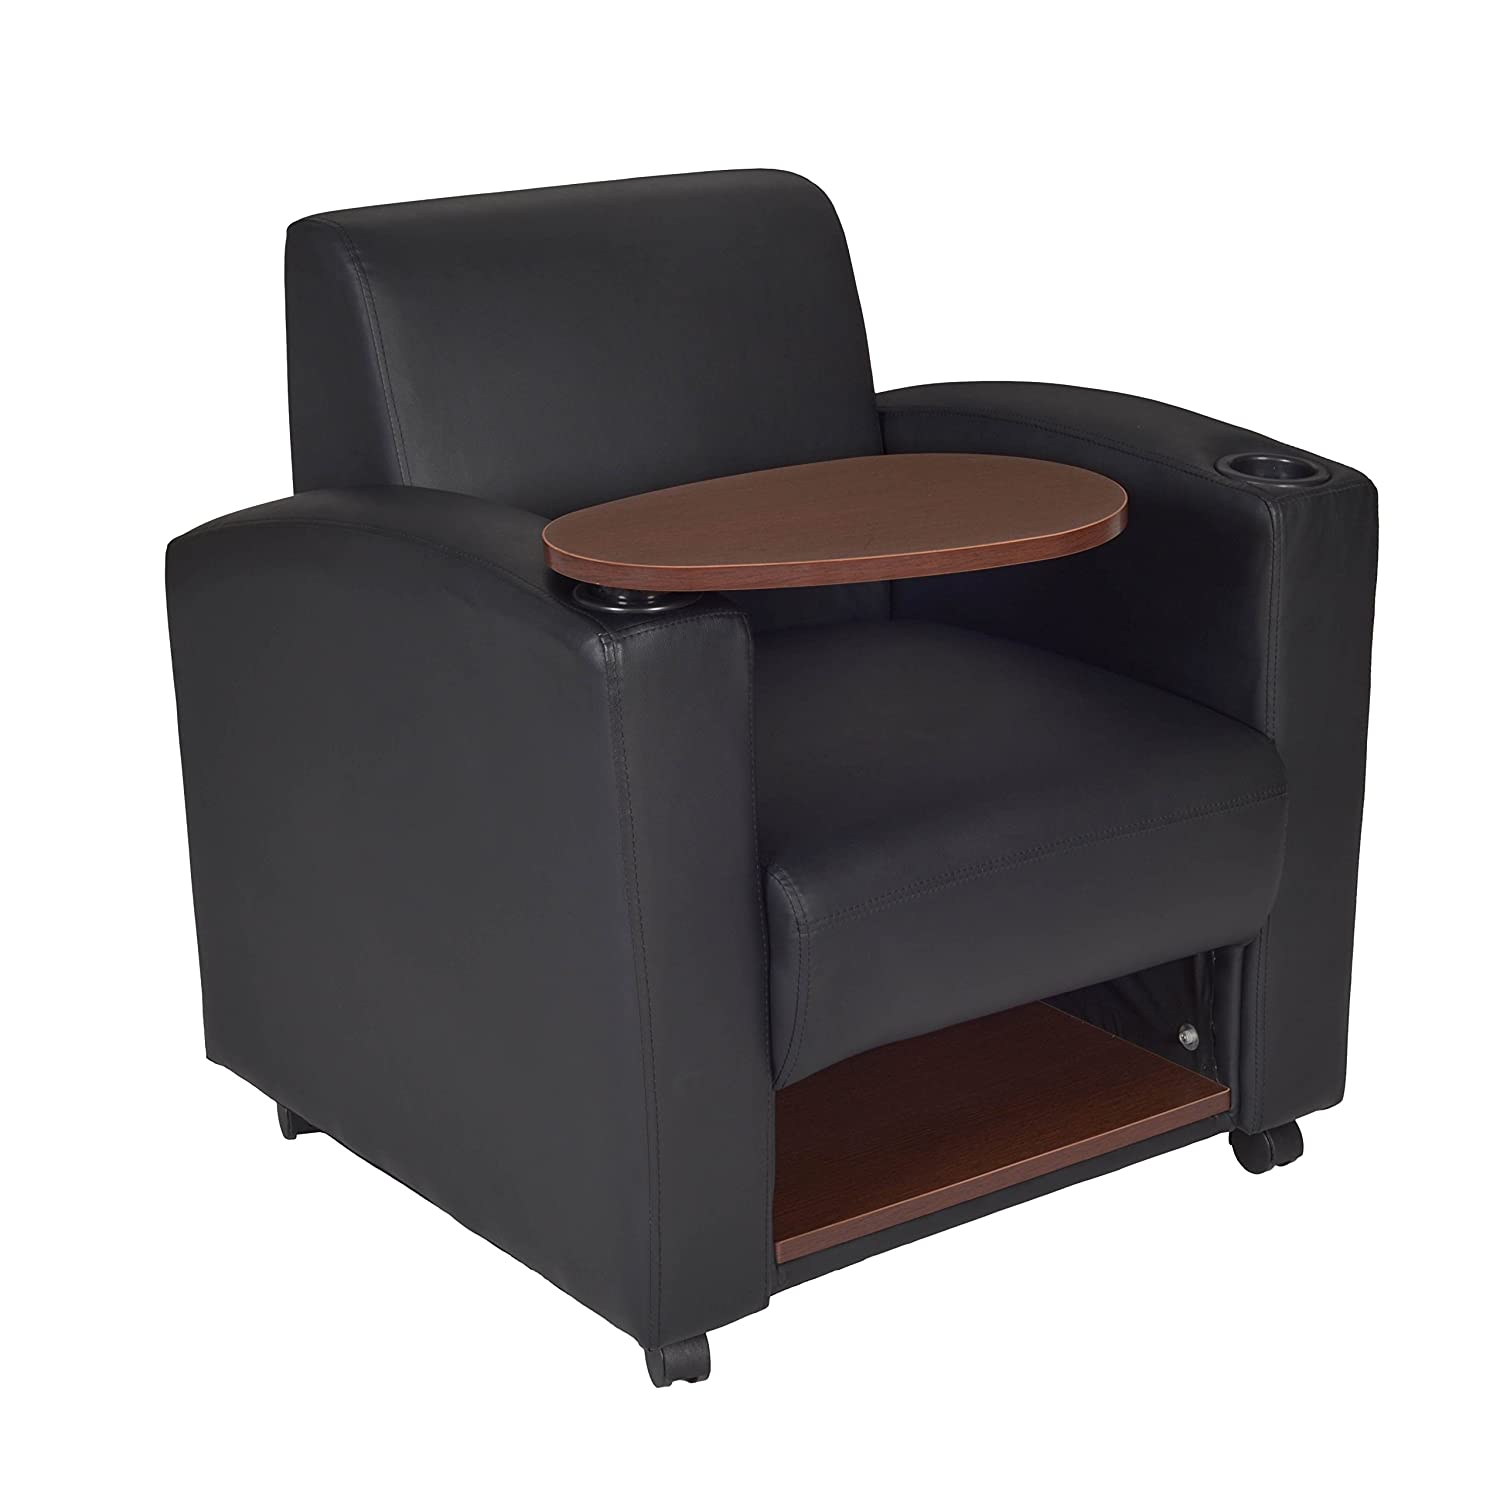 Amazon.com: Regency Modern Nova Mobile Tablet Arm Chair: Kitchen U0026 Dining